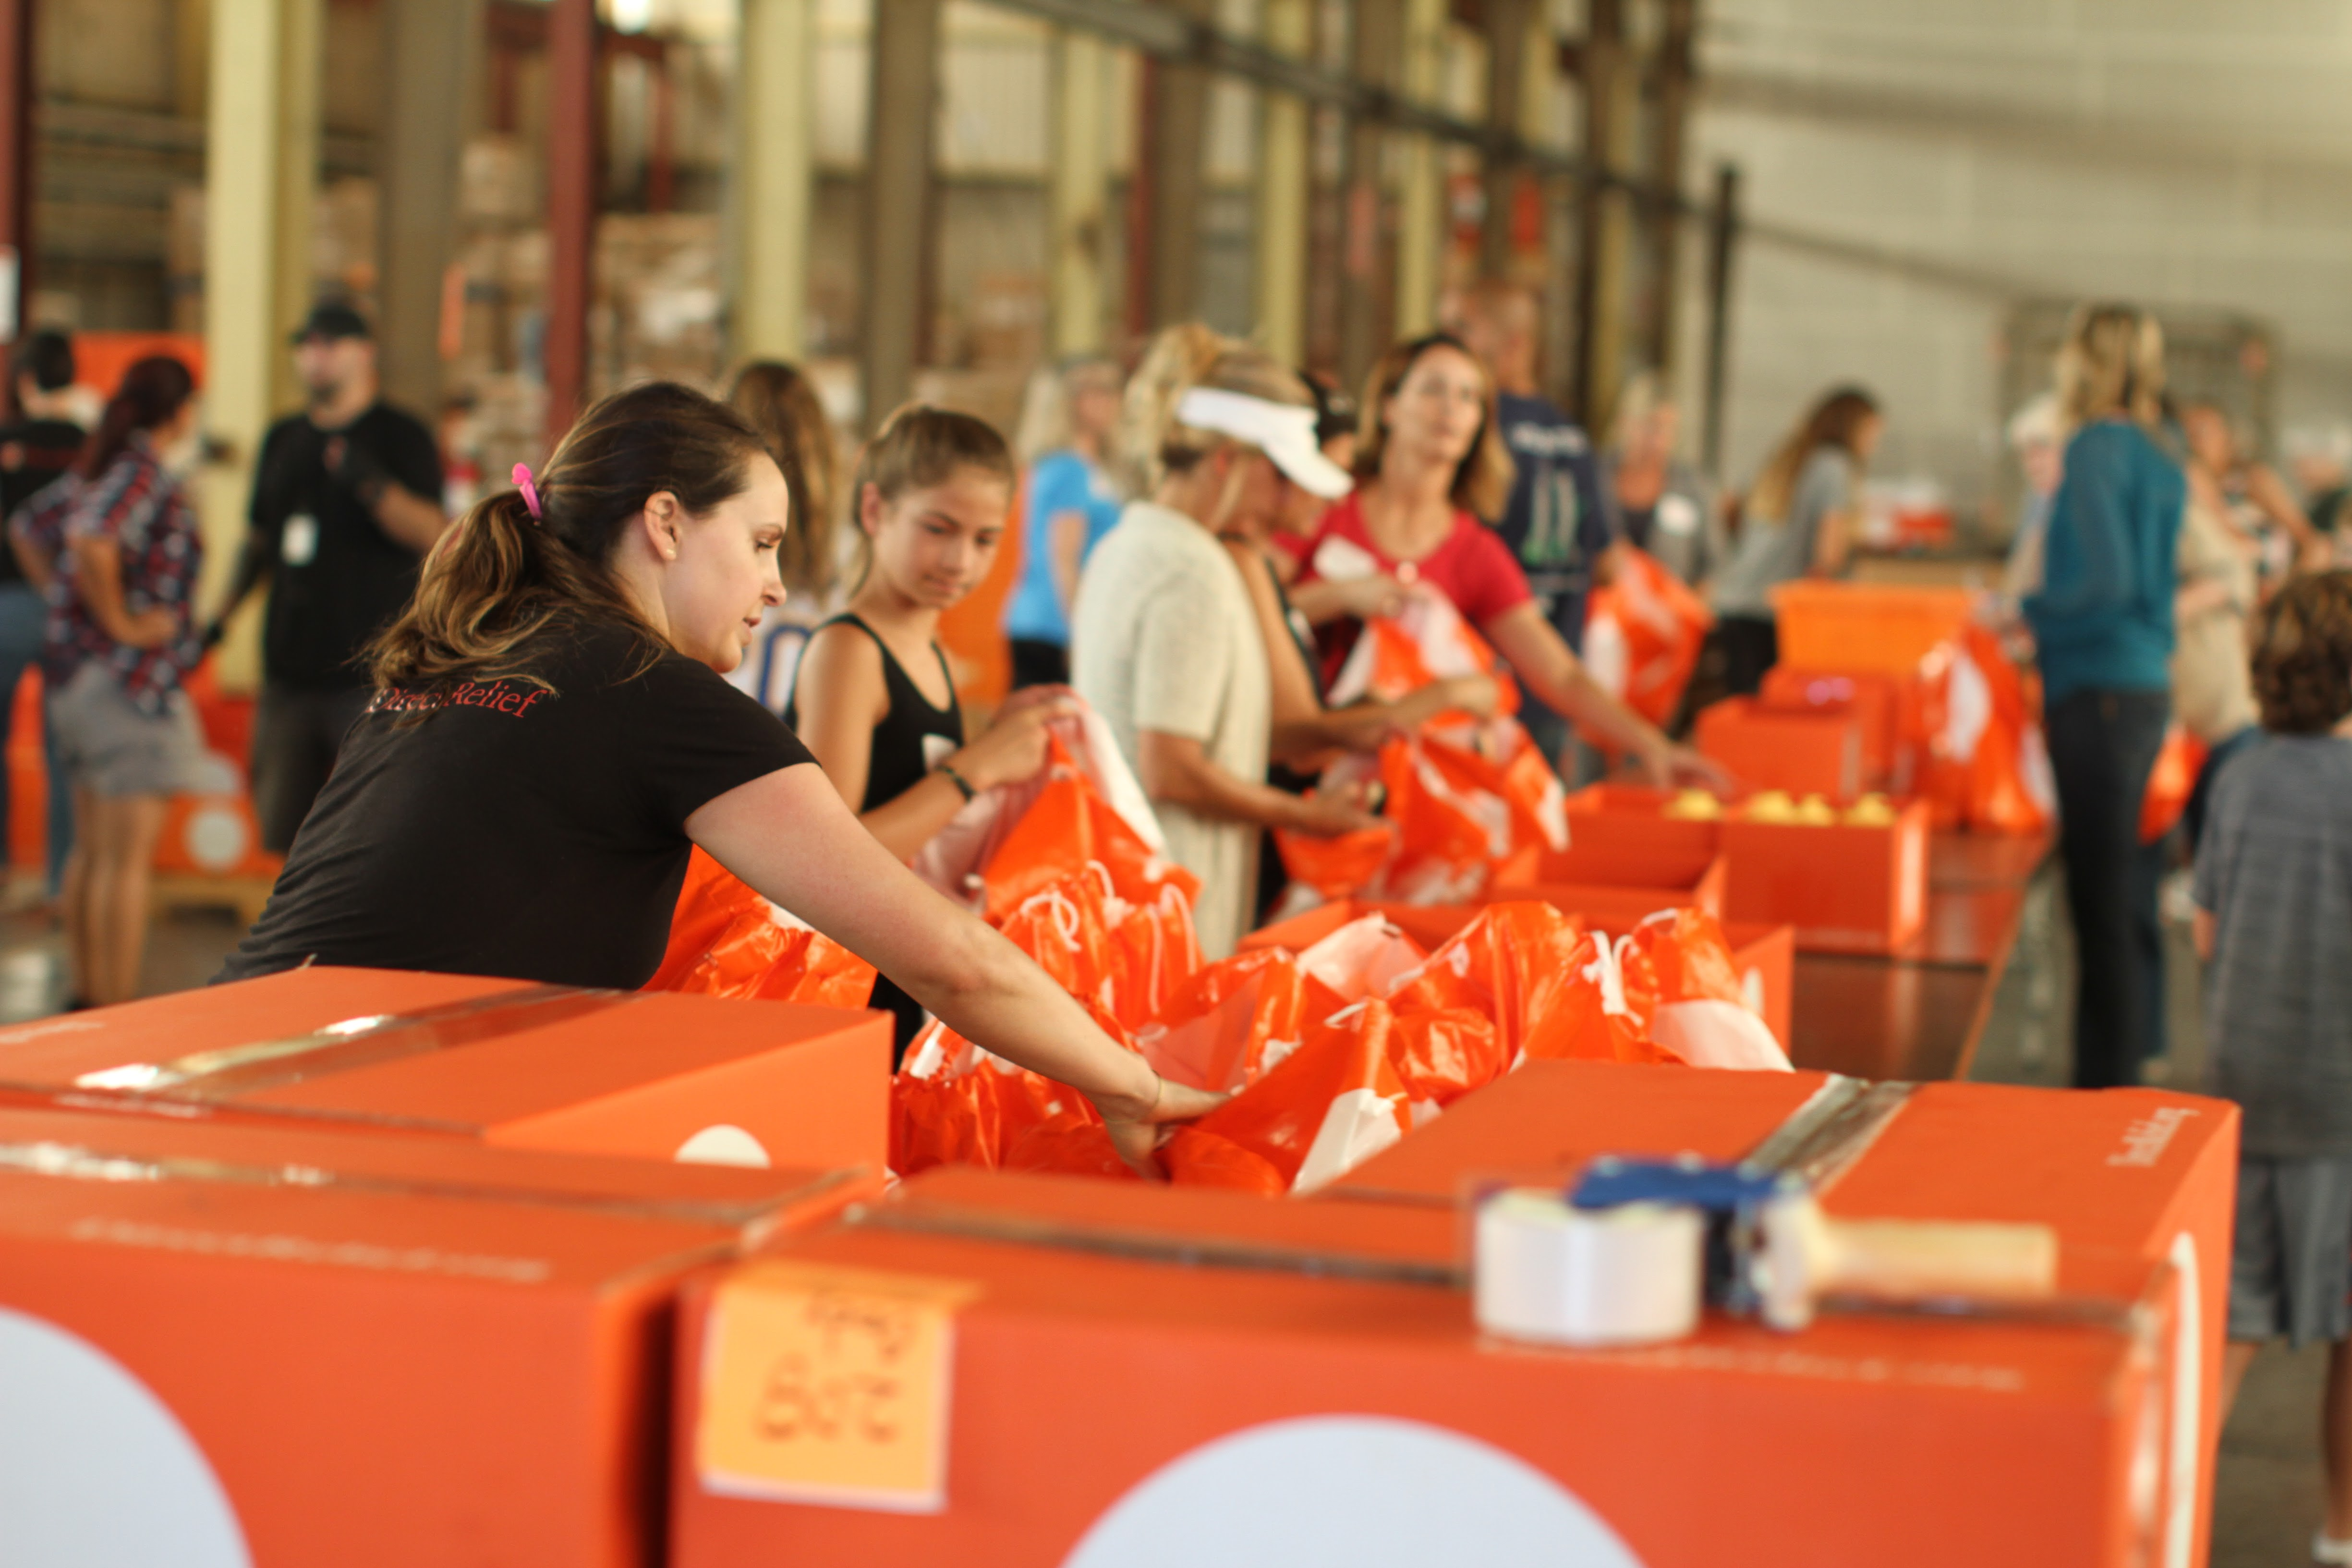 Direct Relief staff and volunteers working in warehouse